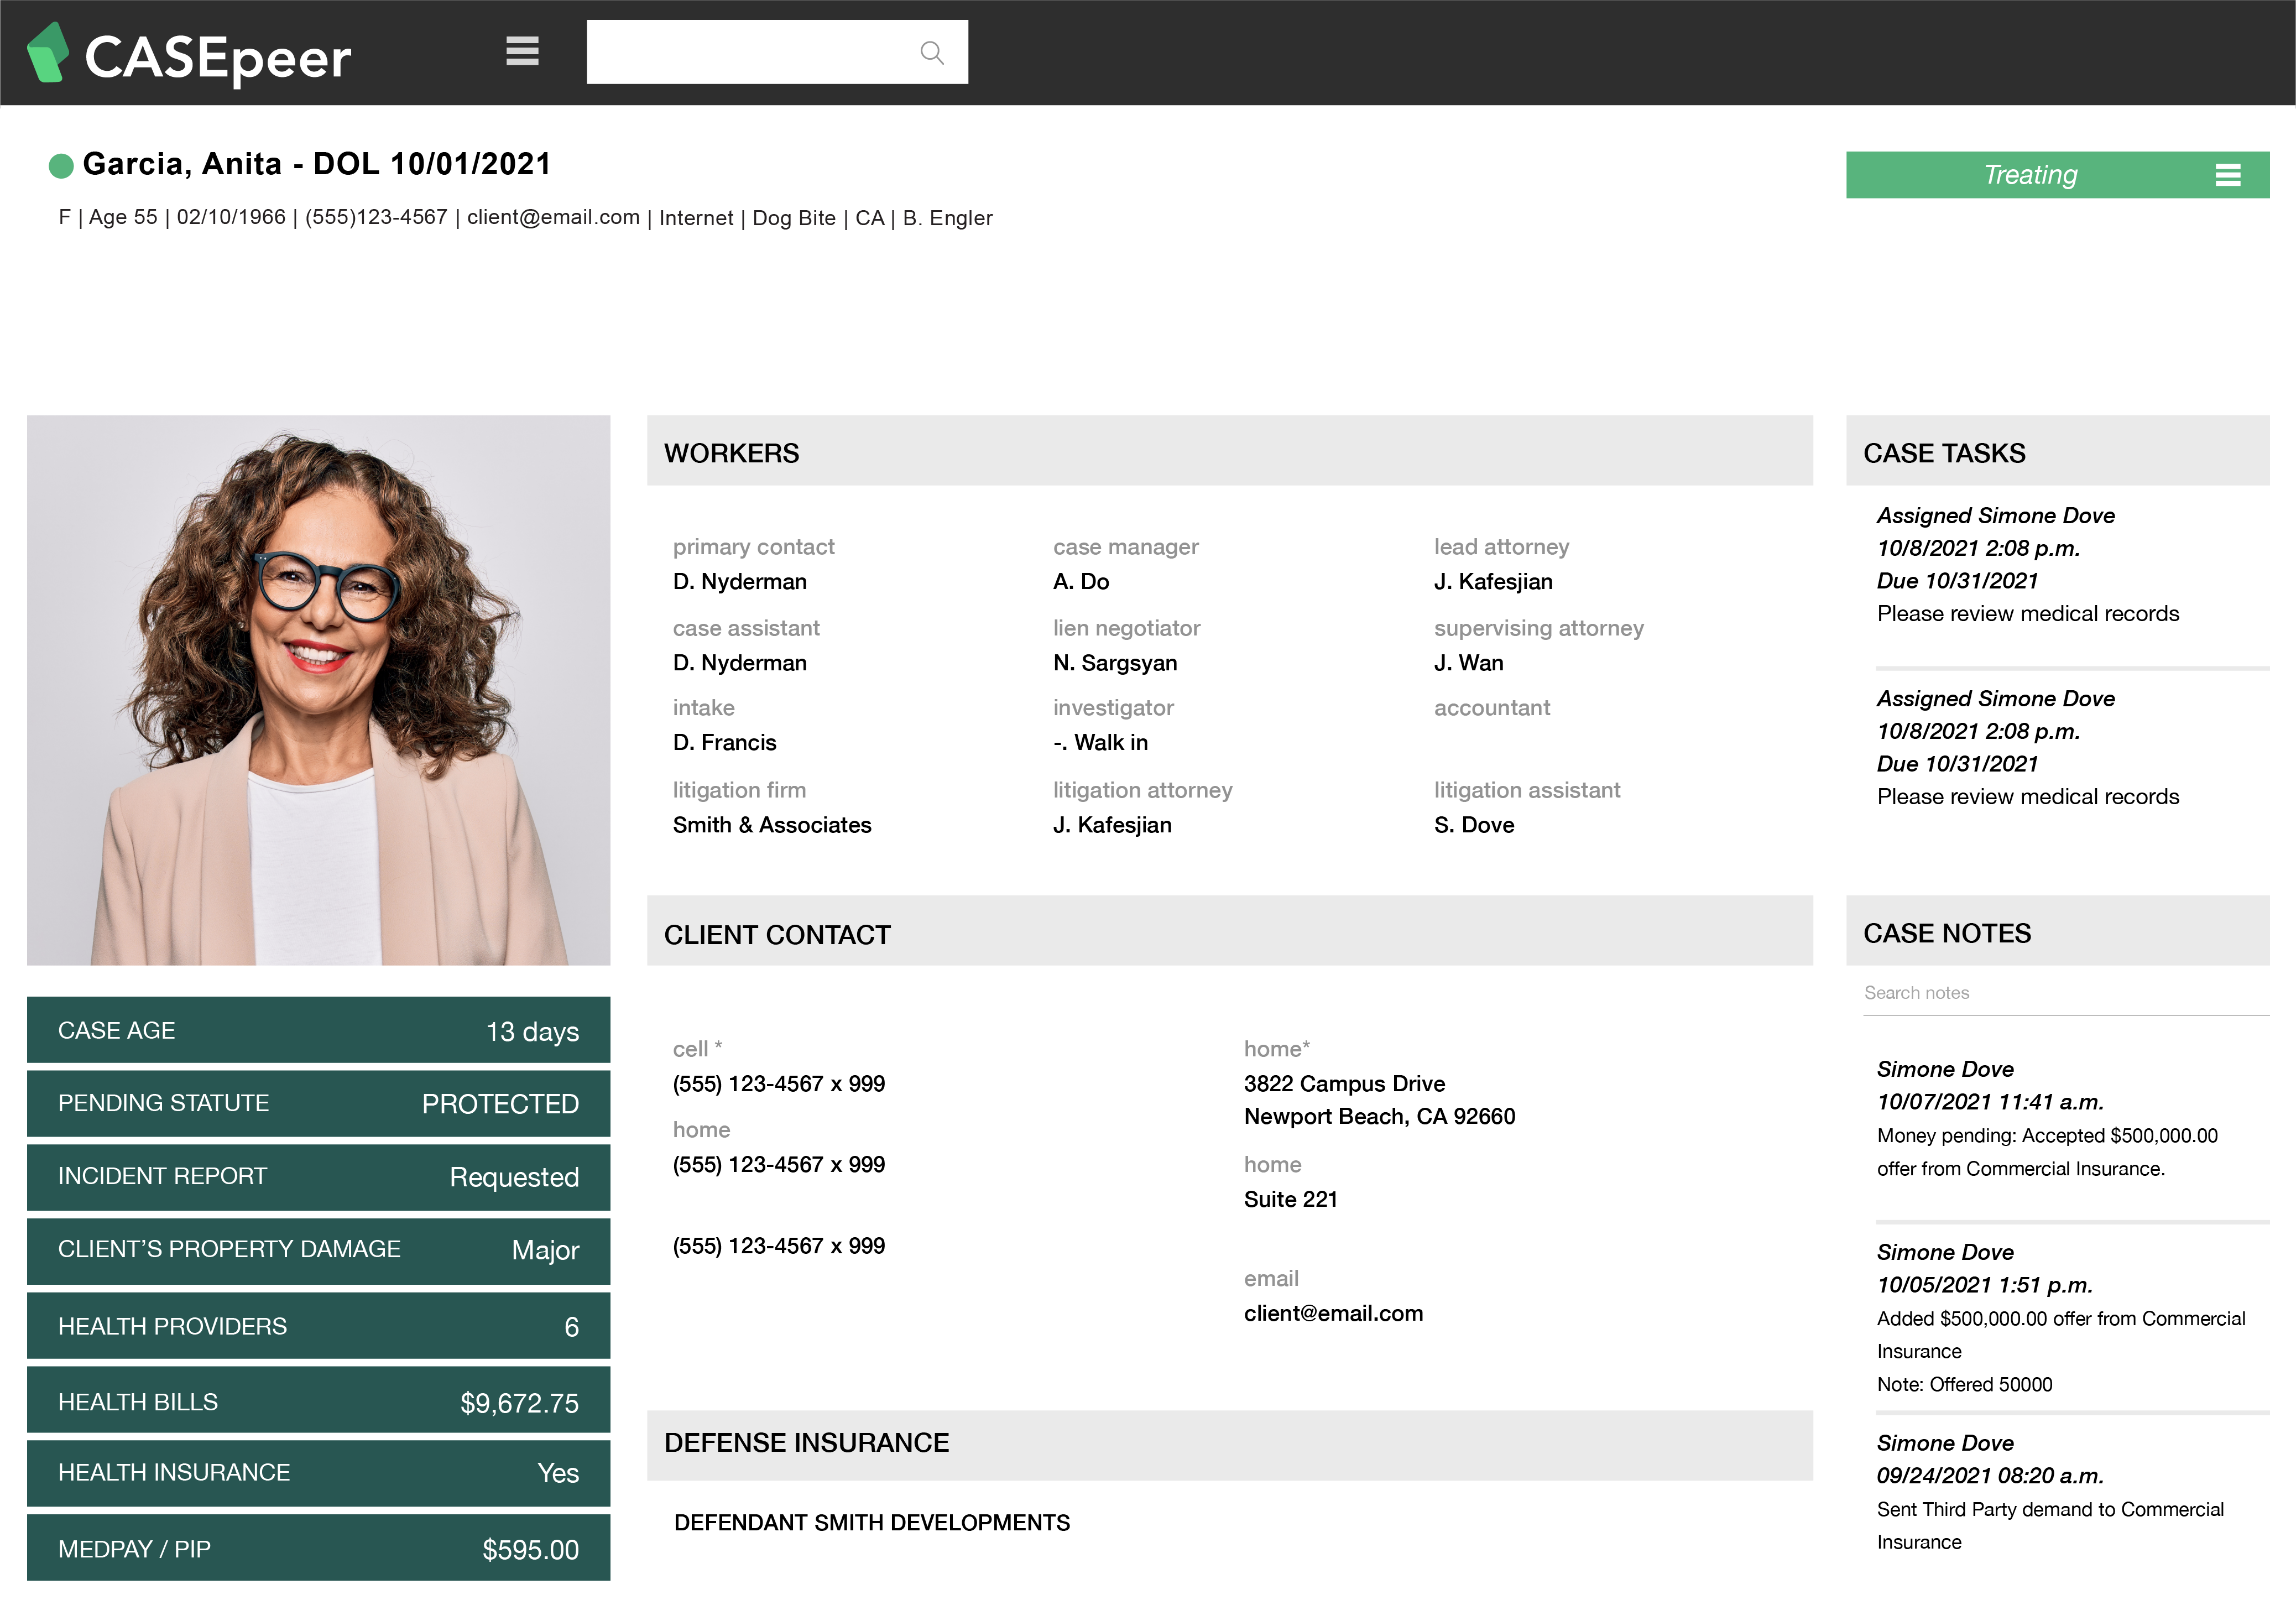 CASEpeer Client Portal with Woman Smiling